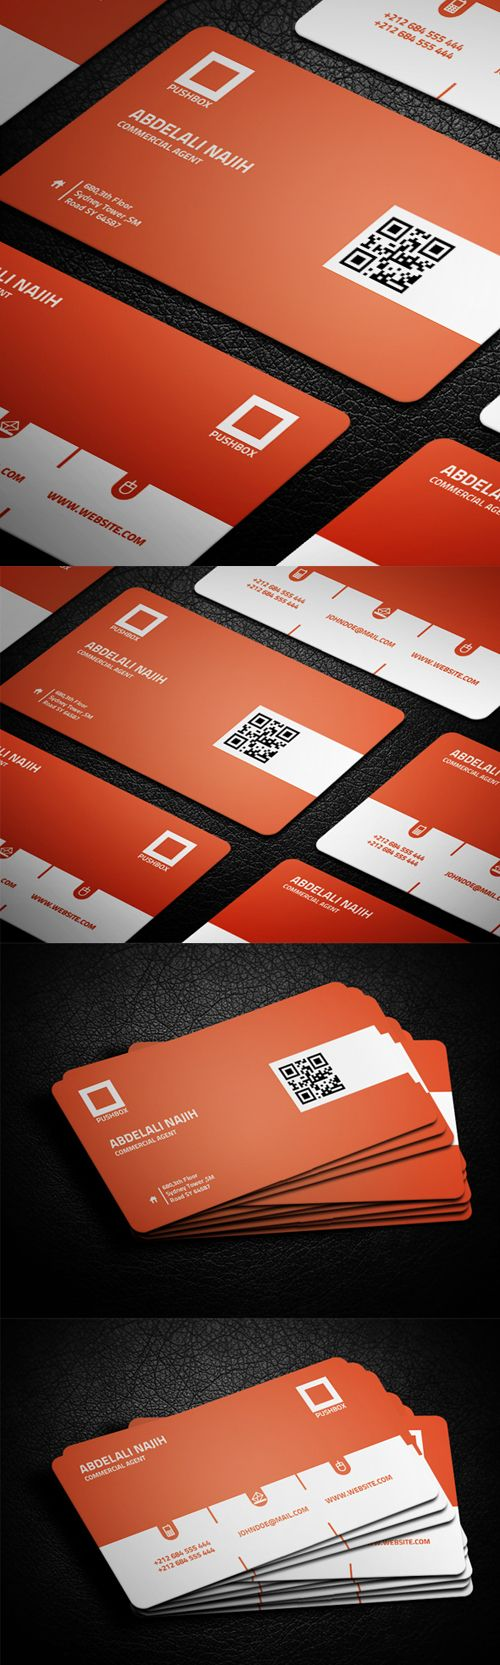 Best 25 professional business cards ideas on pinterest modern 15 amazing business cards templates design 2014graphic design magazine graphic design magazine magicingreecefo Gallery